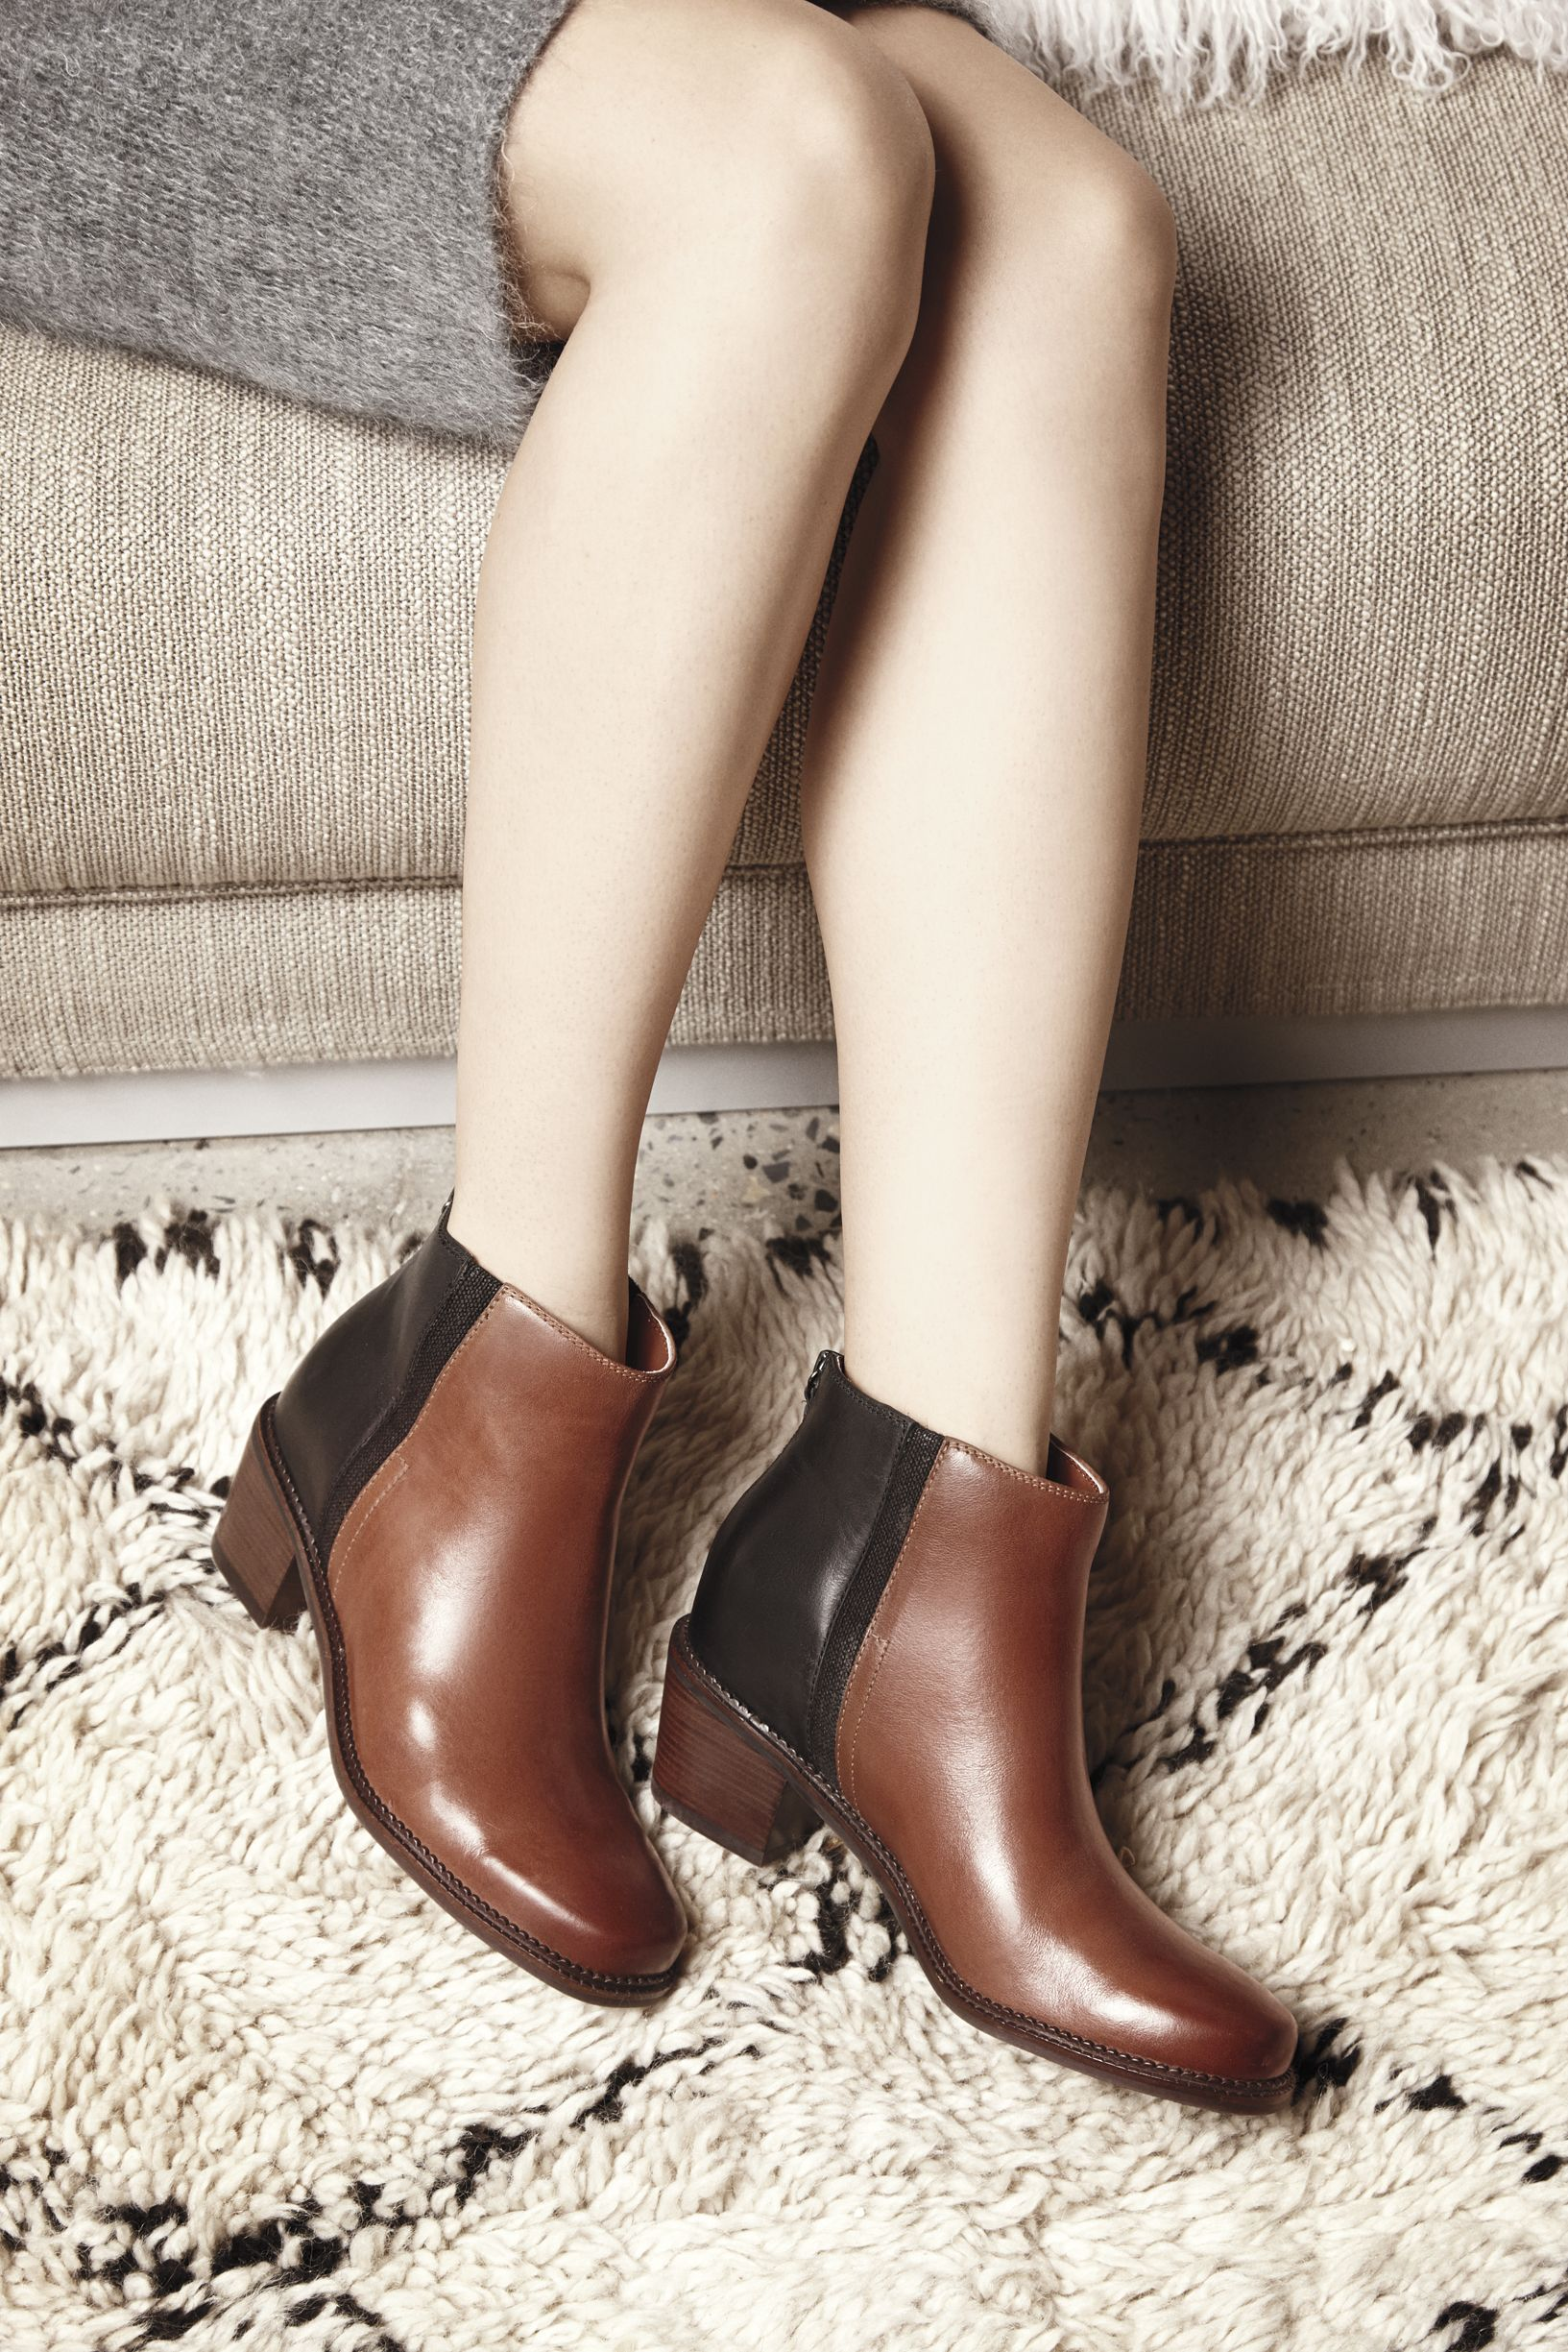 Hush Puppies Aw14 Collection Stella Cordell Women S Boots Womens Boots Hush Puppies Women